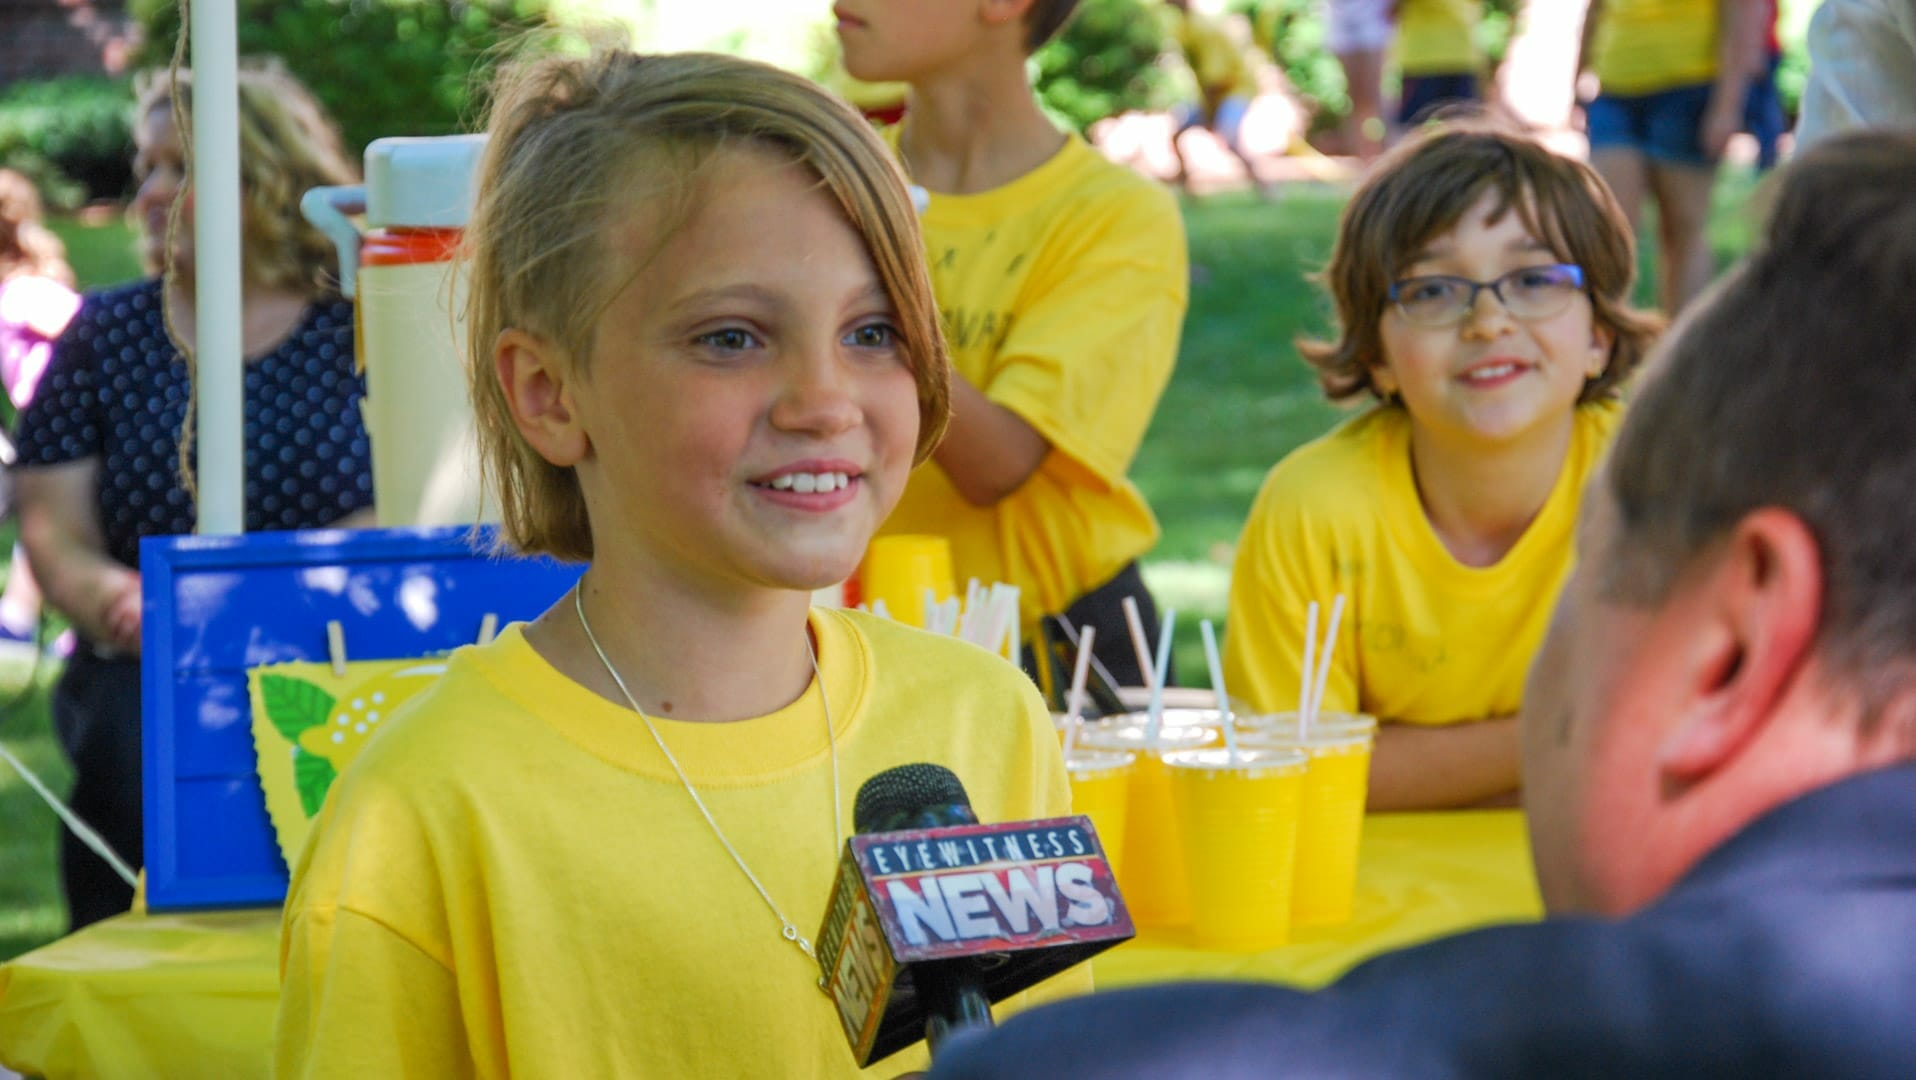 Student in summer explorations program on news for lemonade stand